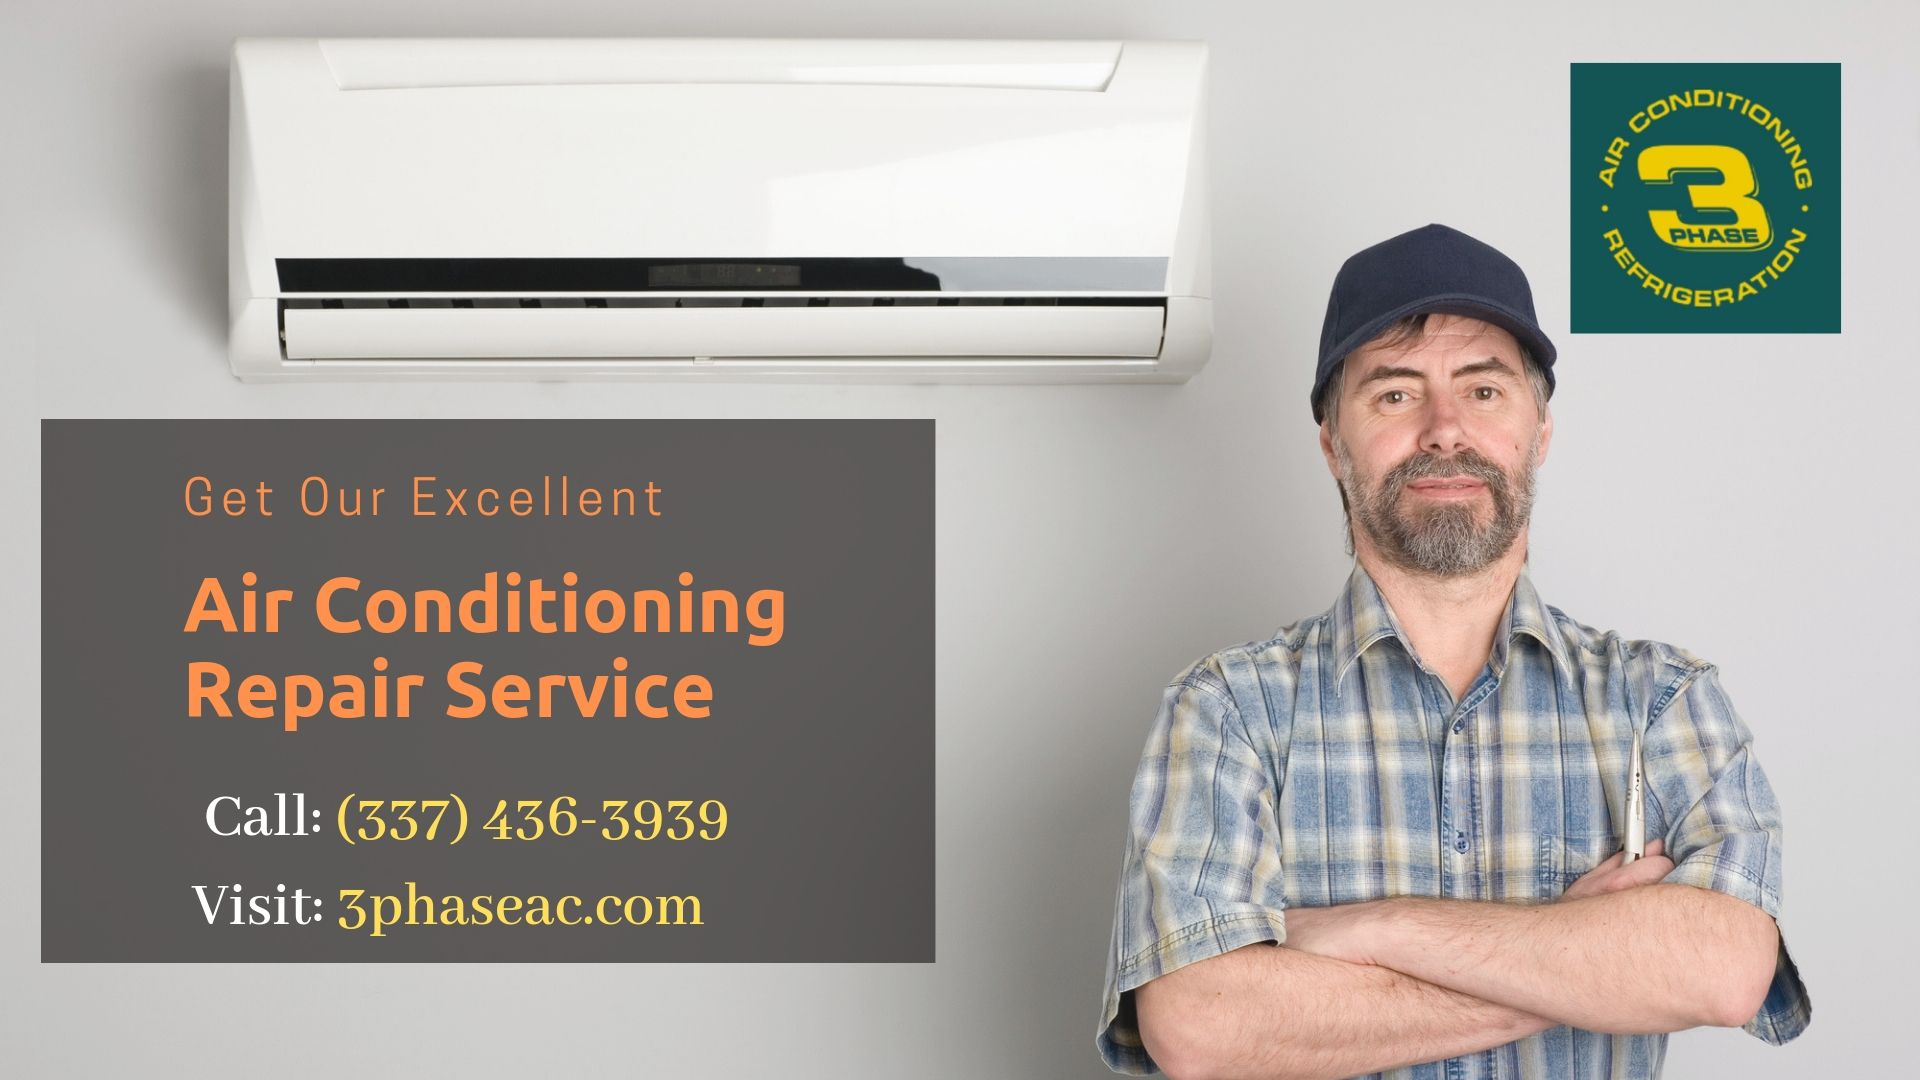 Get Our Excellent Air Conditioning Repair Service Air